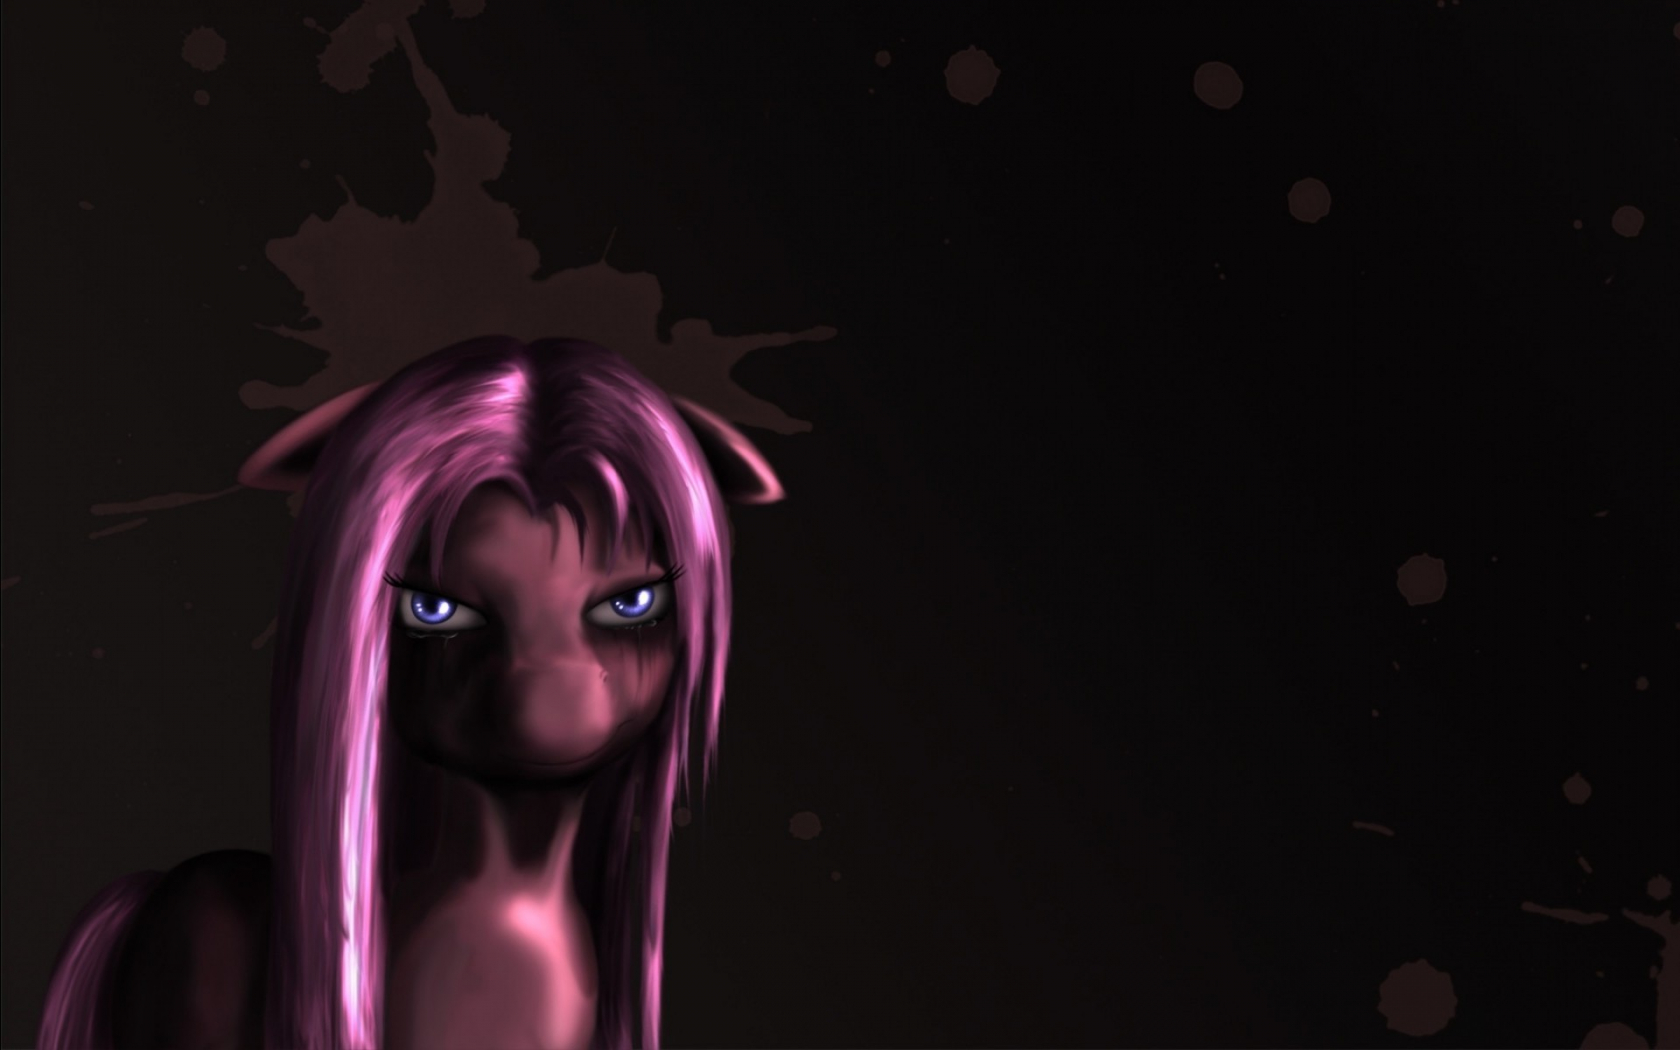 Free Download Pinkie Pie My Little Pony Wallpaper 4806 1920x1200